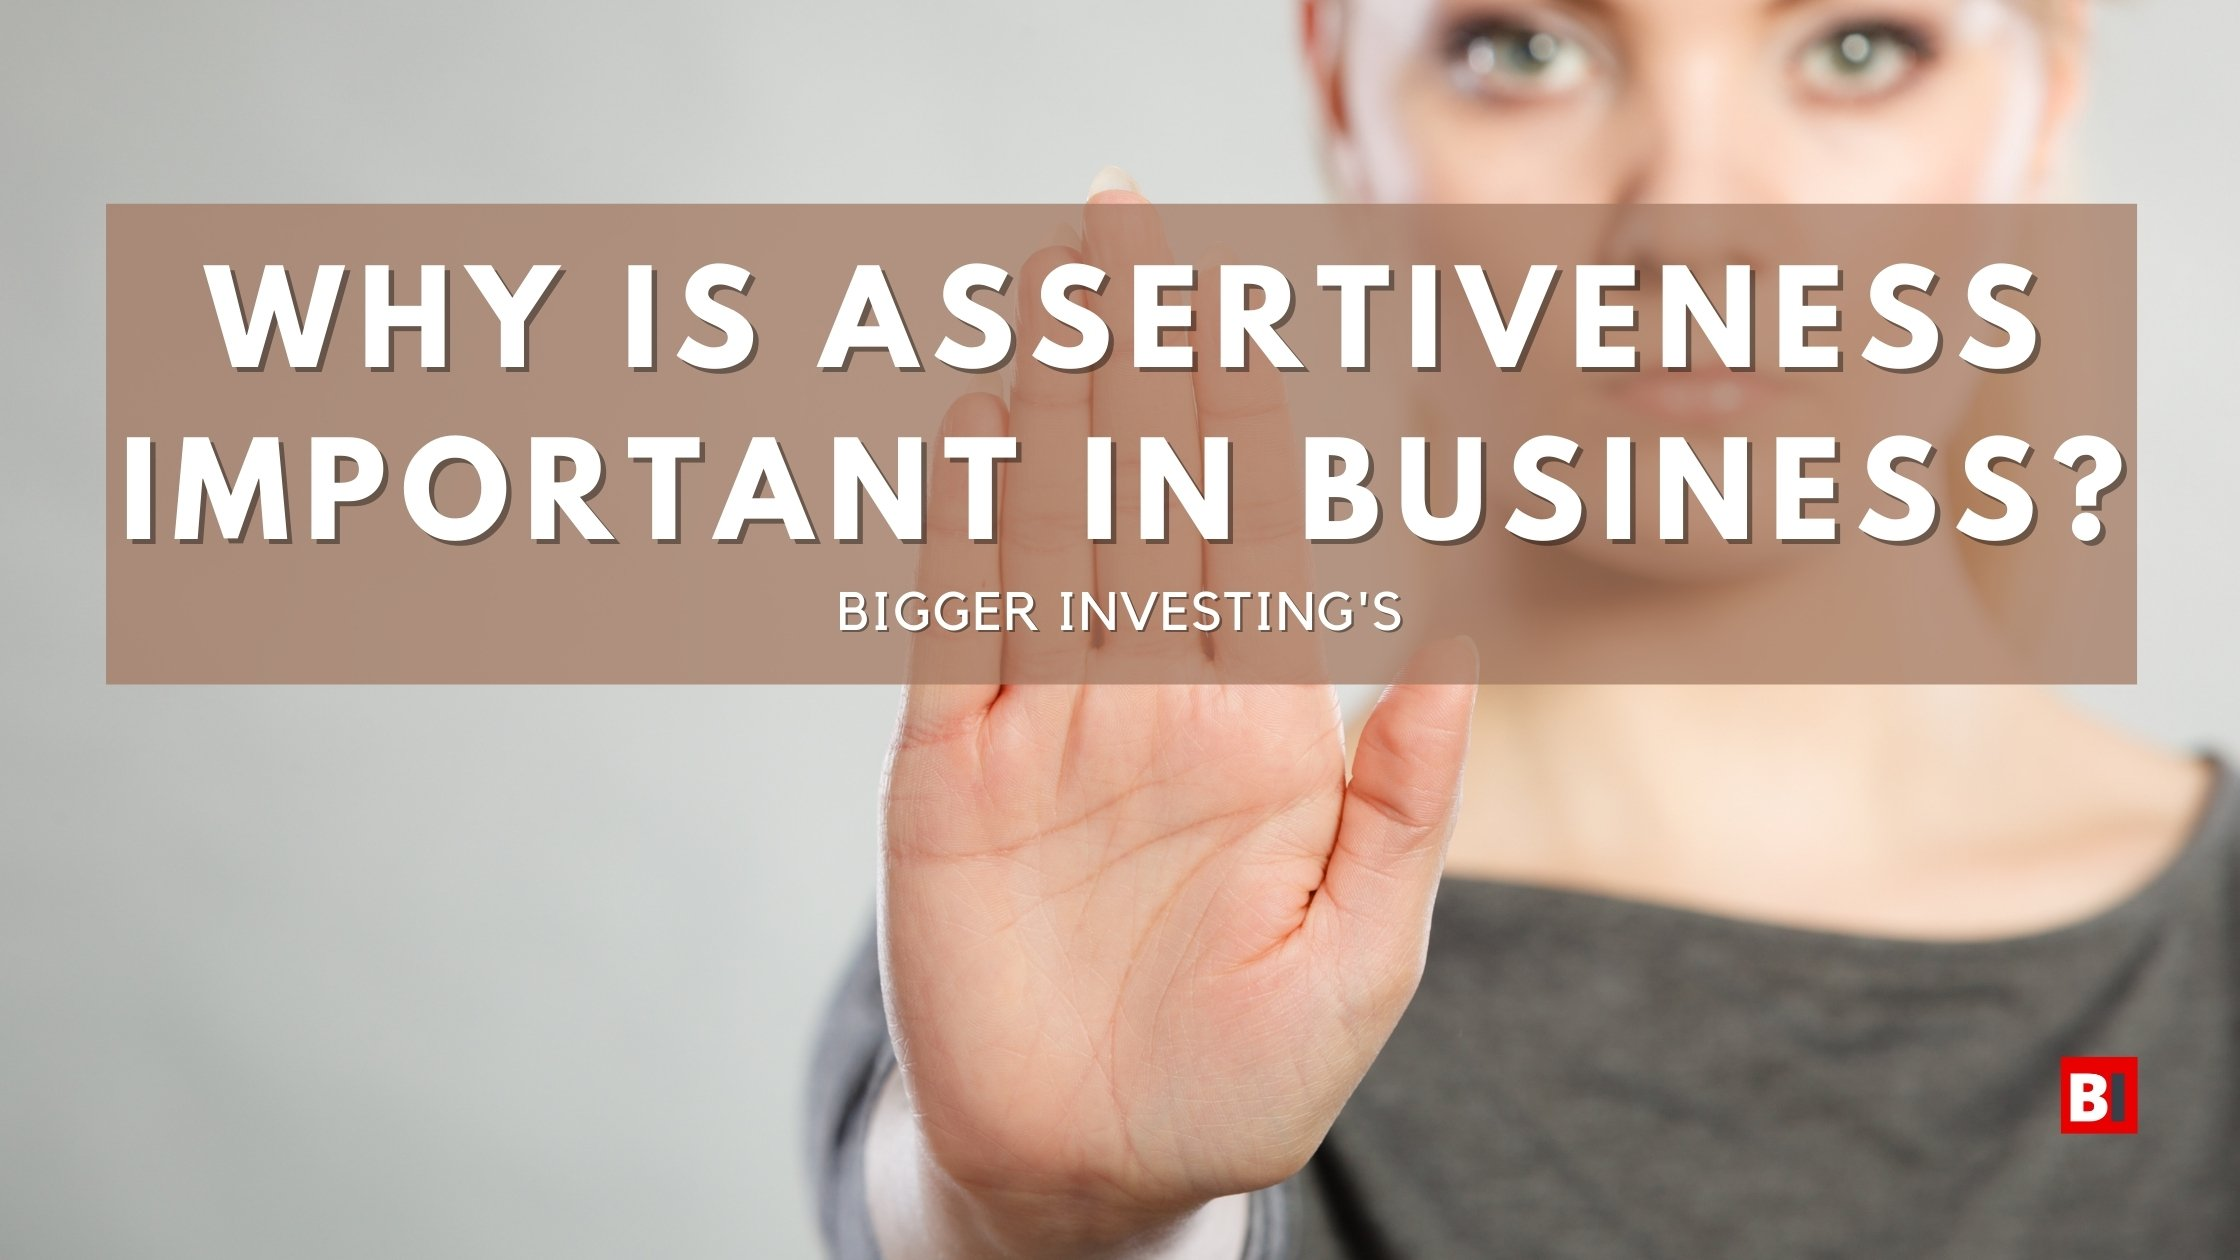 Why is Assertiveness Important in Business?